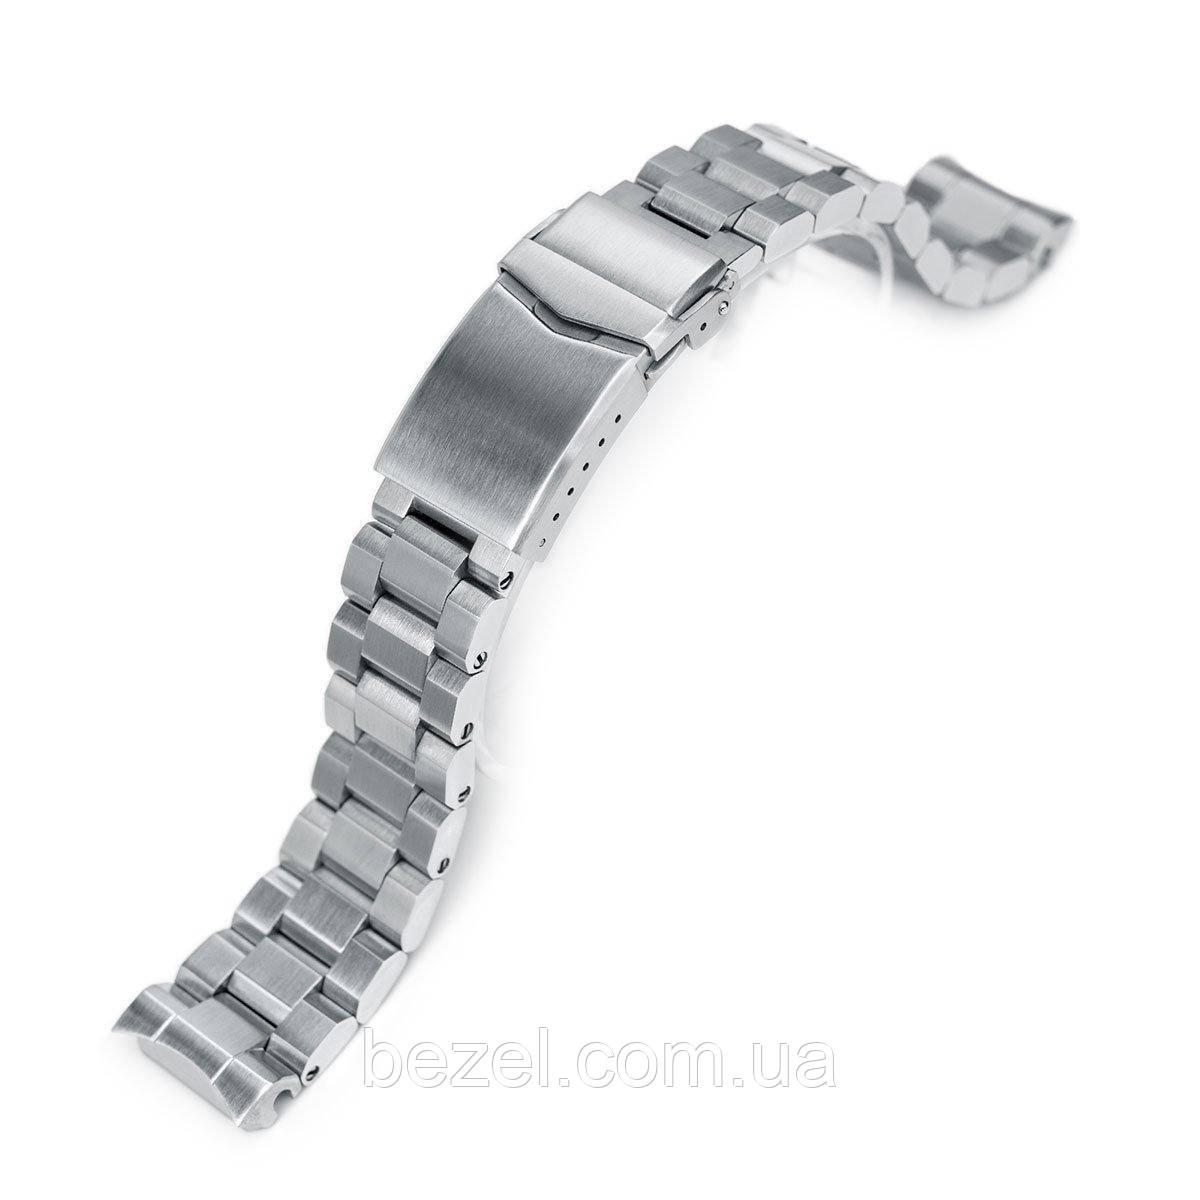 20mm Hexad Oyster 316L Stainless Steel Watch Band for Seiko MM300 Prospex Marinemaster SBDX001, V-Clasp Button Double Lock